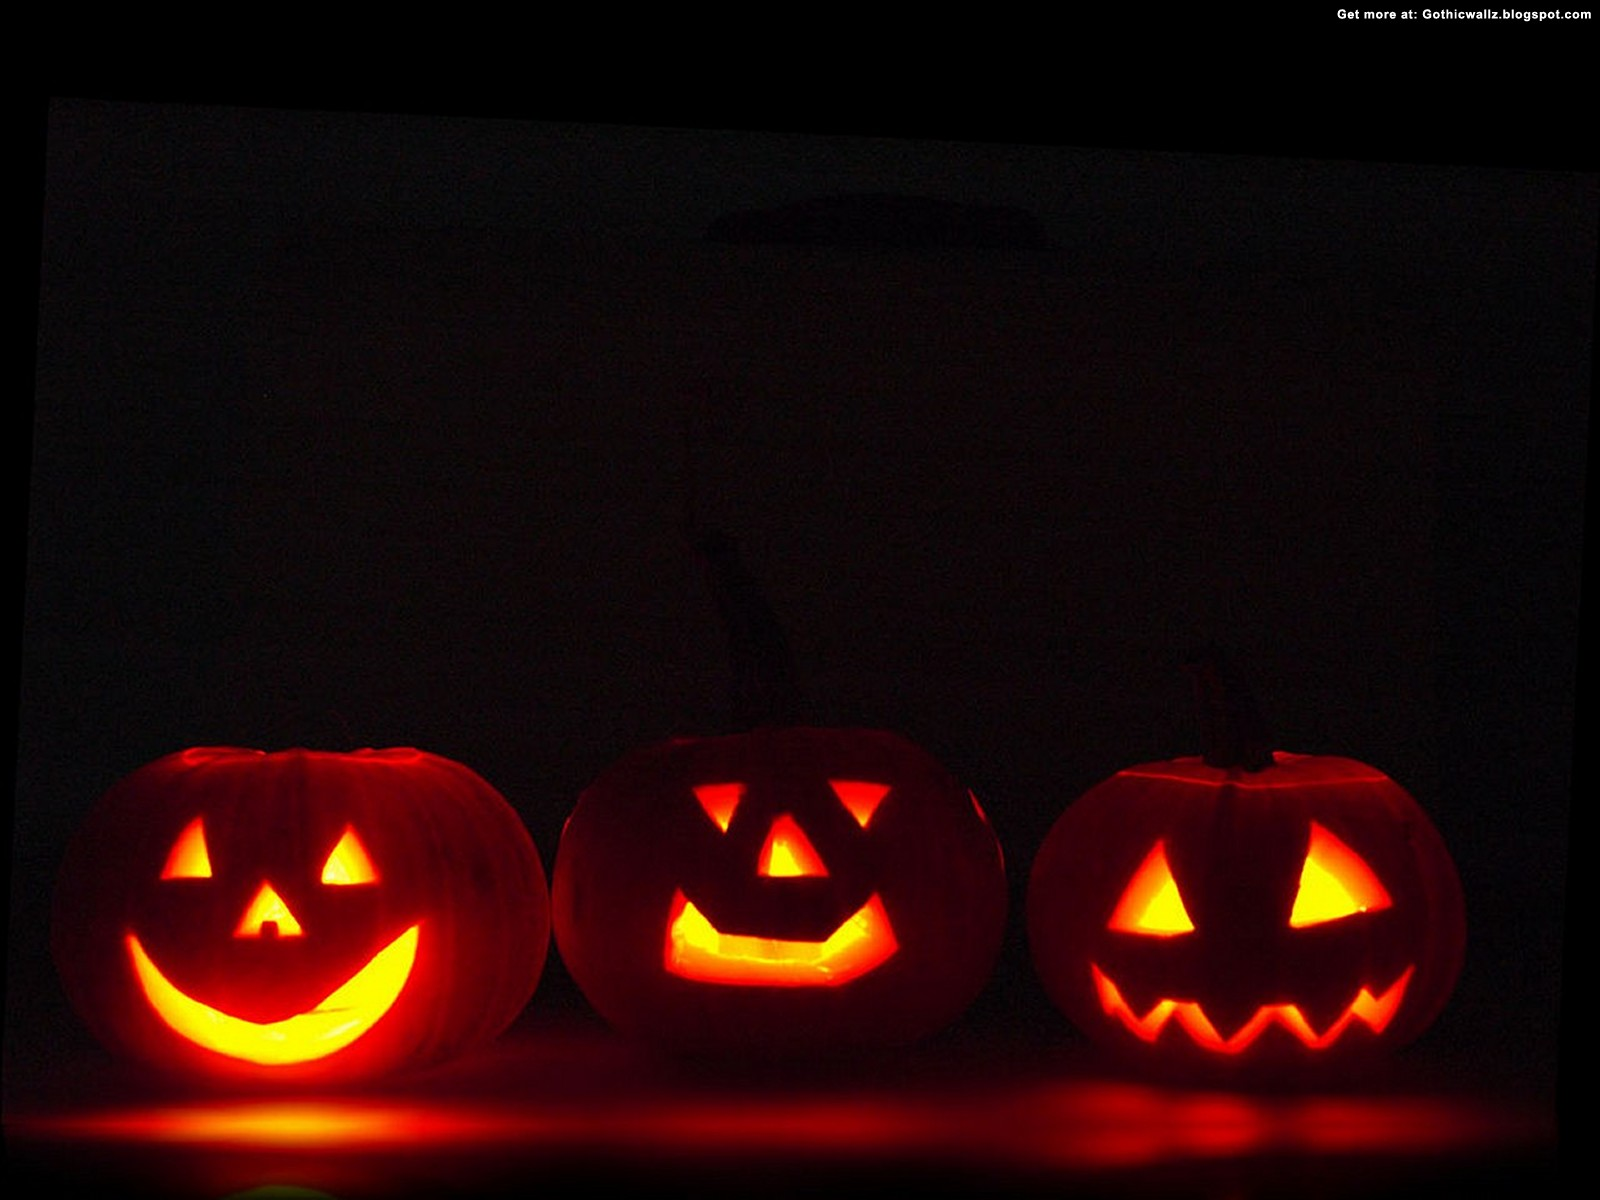 halloween pumpkin smilies | Gothic Wallpaper Download